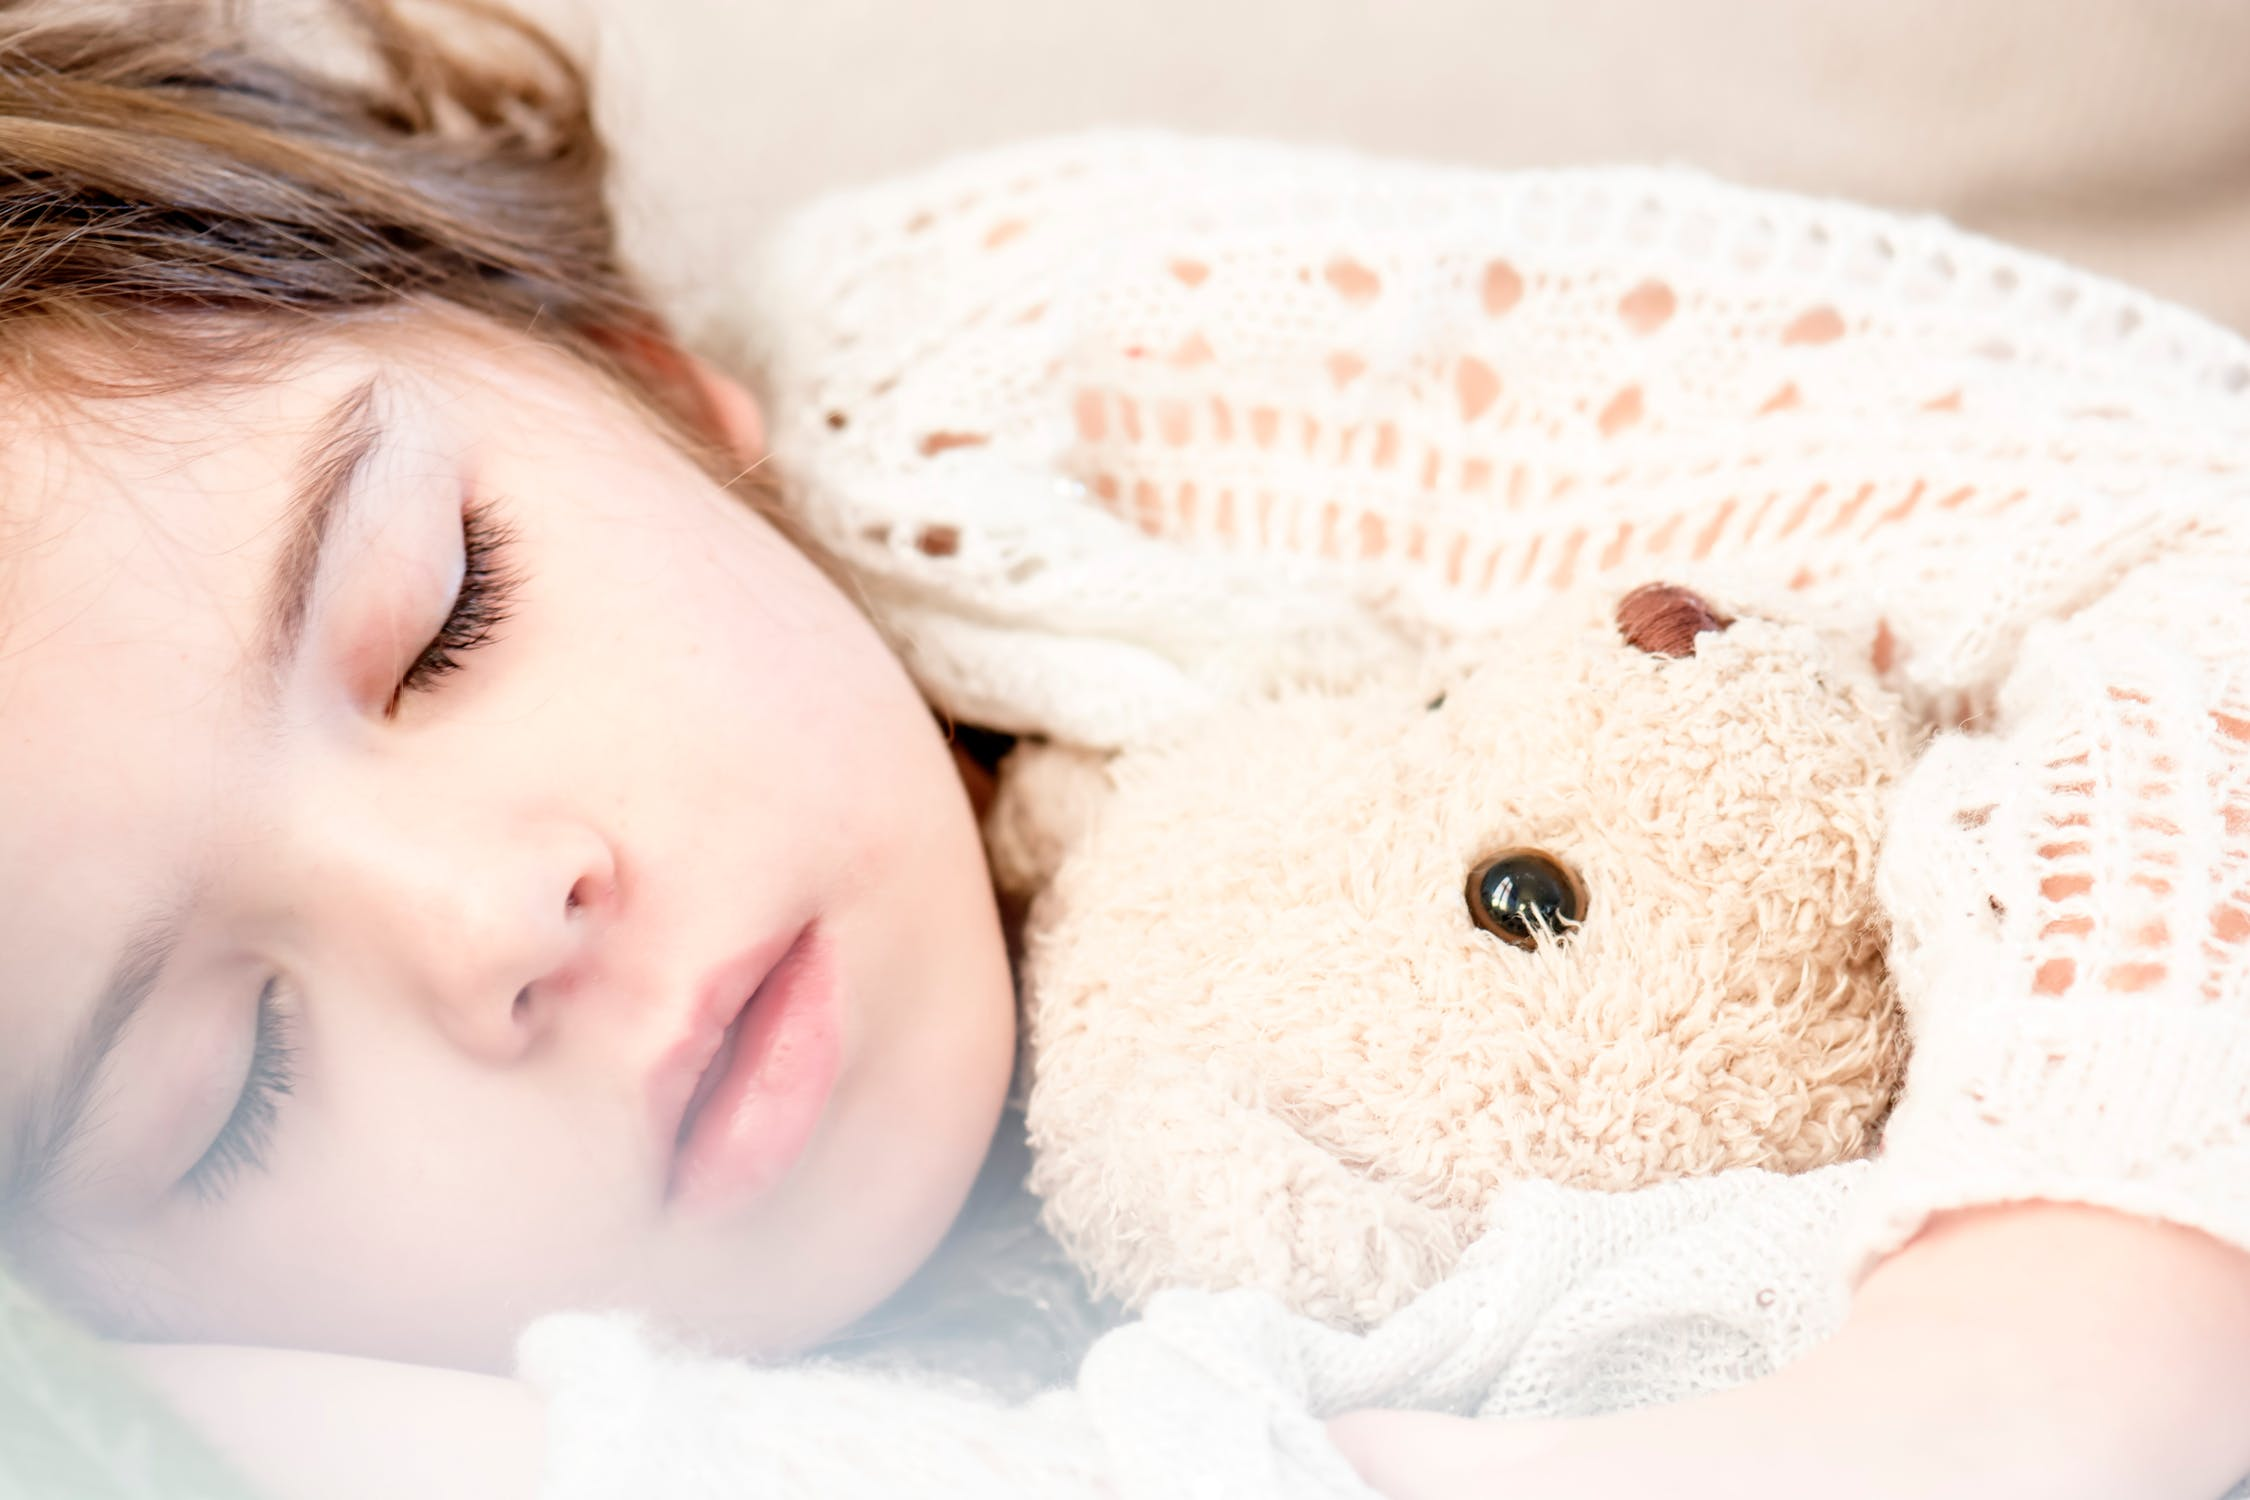 A little girl sleeping with a teddy